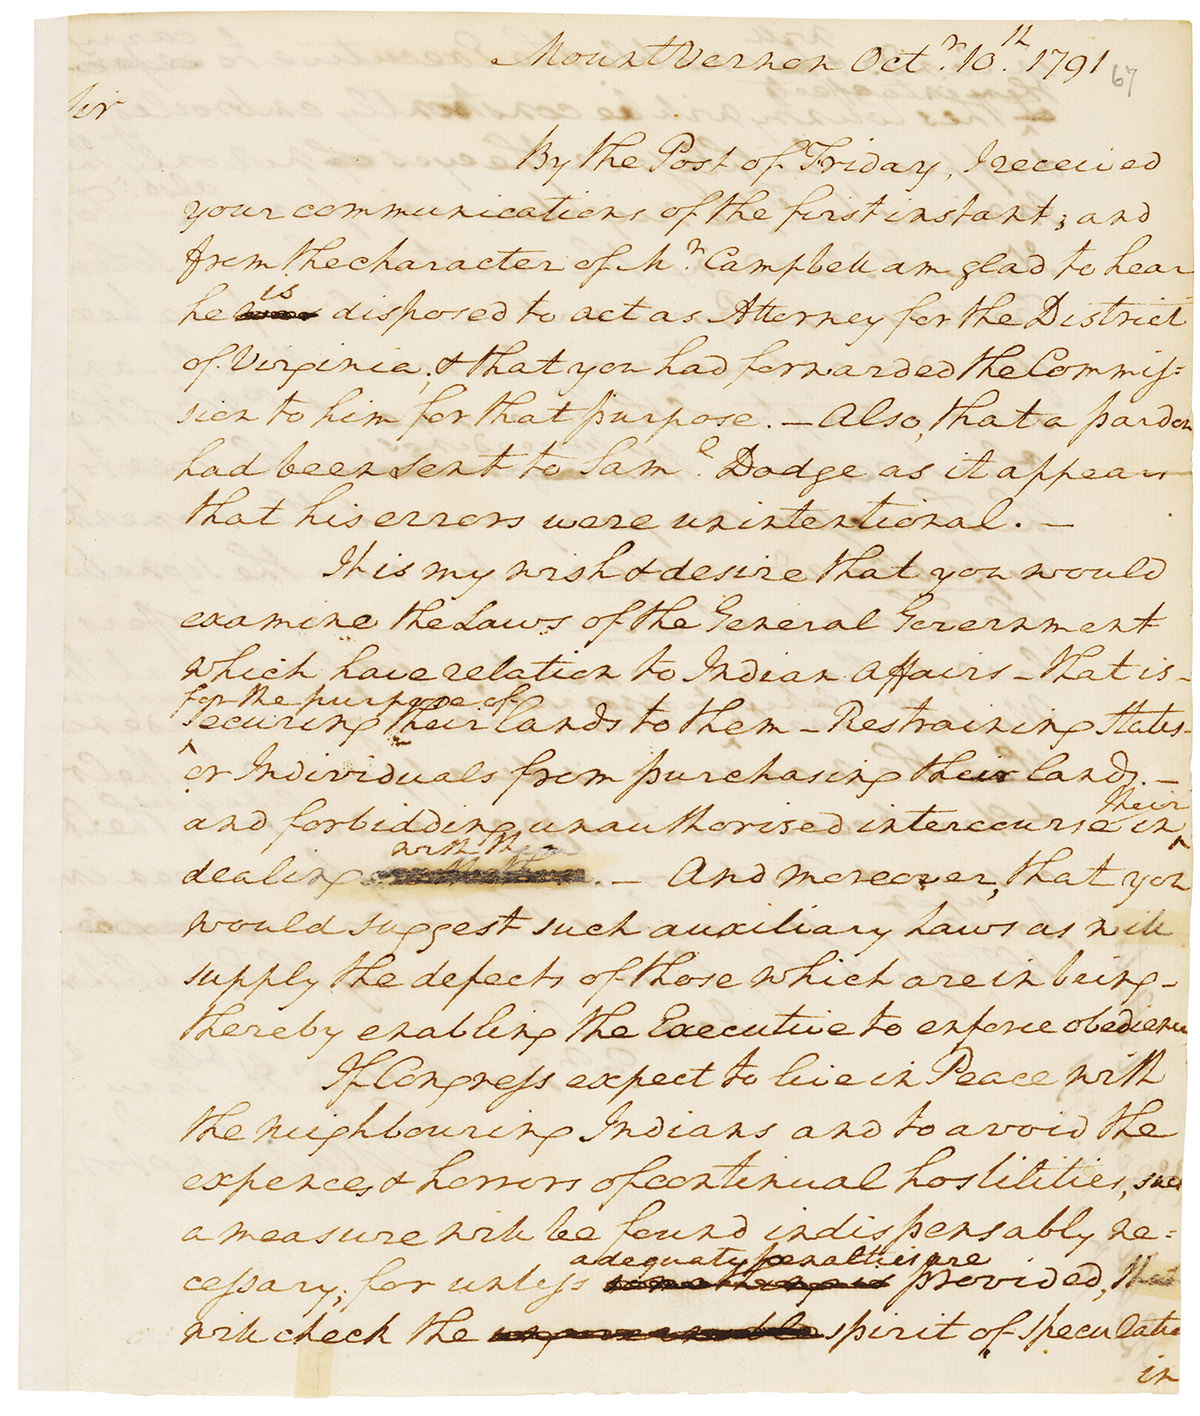 Letter from George Washington to Edmund Randolph, October 10, 1791 (General Records of the Department of State. RG 59)